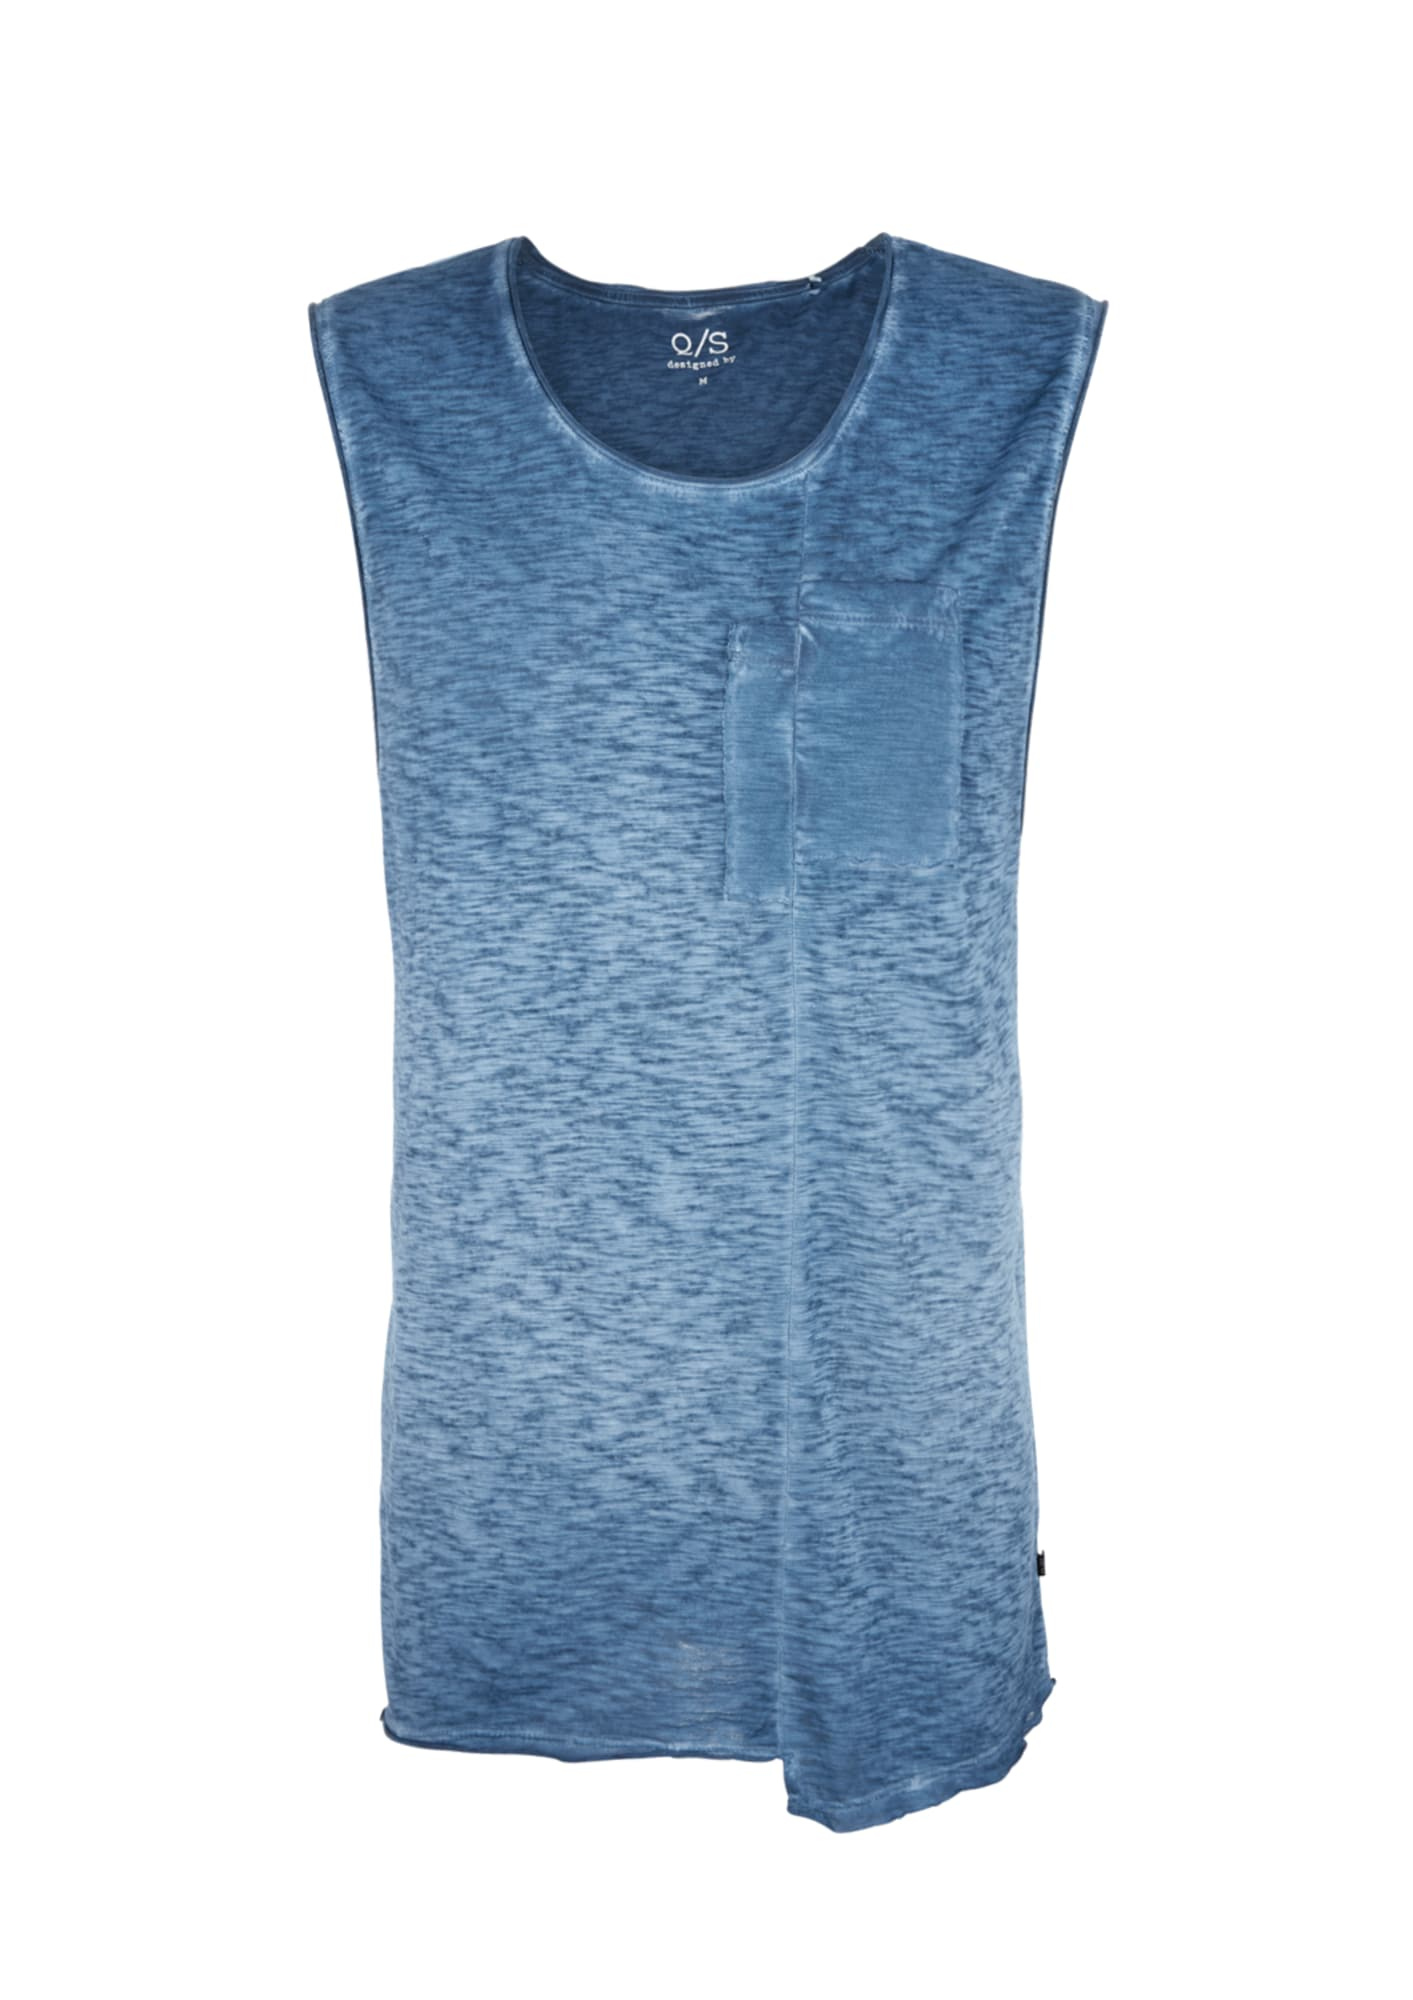 Tanktop mit Front Pocket | Bekleidung > Shirts > Tank Tops | Q/S Designed By